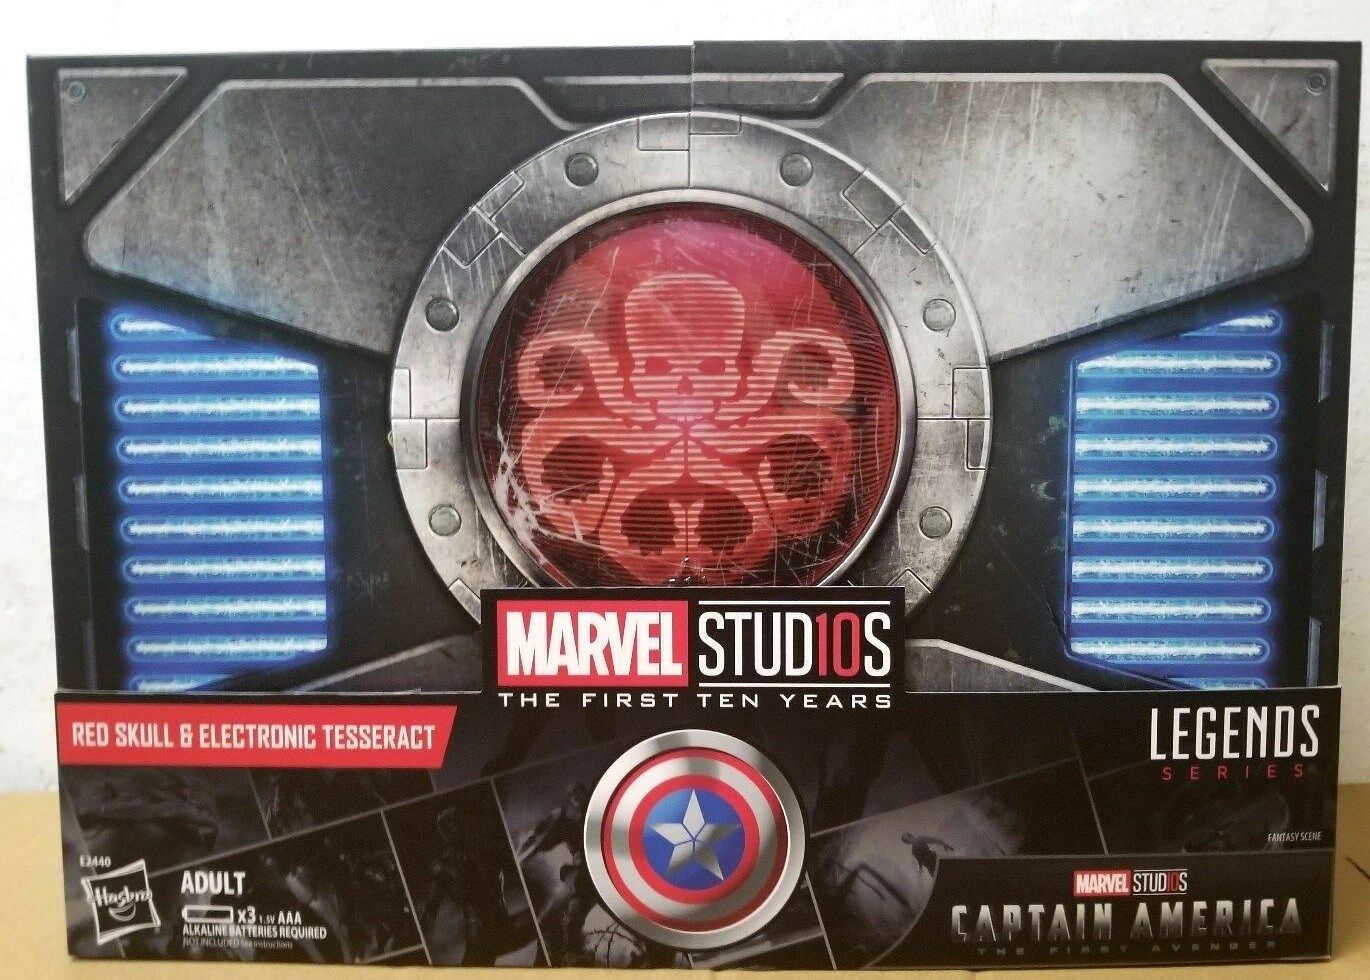 Hasbro marvel legends series 10. rot skull & elektronische tesserakt sdcc 2018